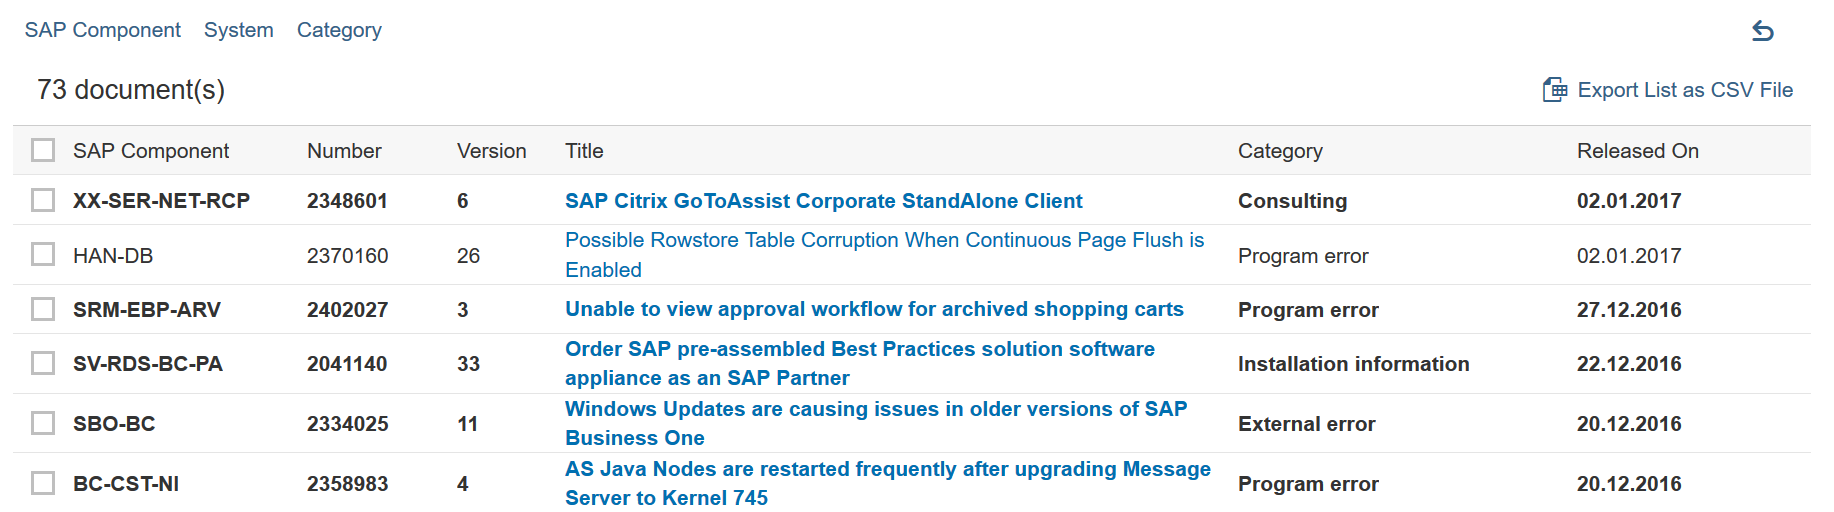 SAP HotNews in the Support Portal